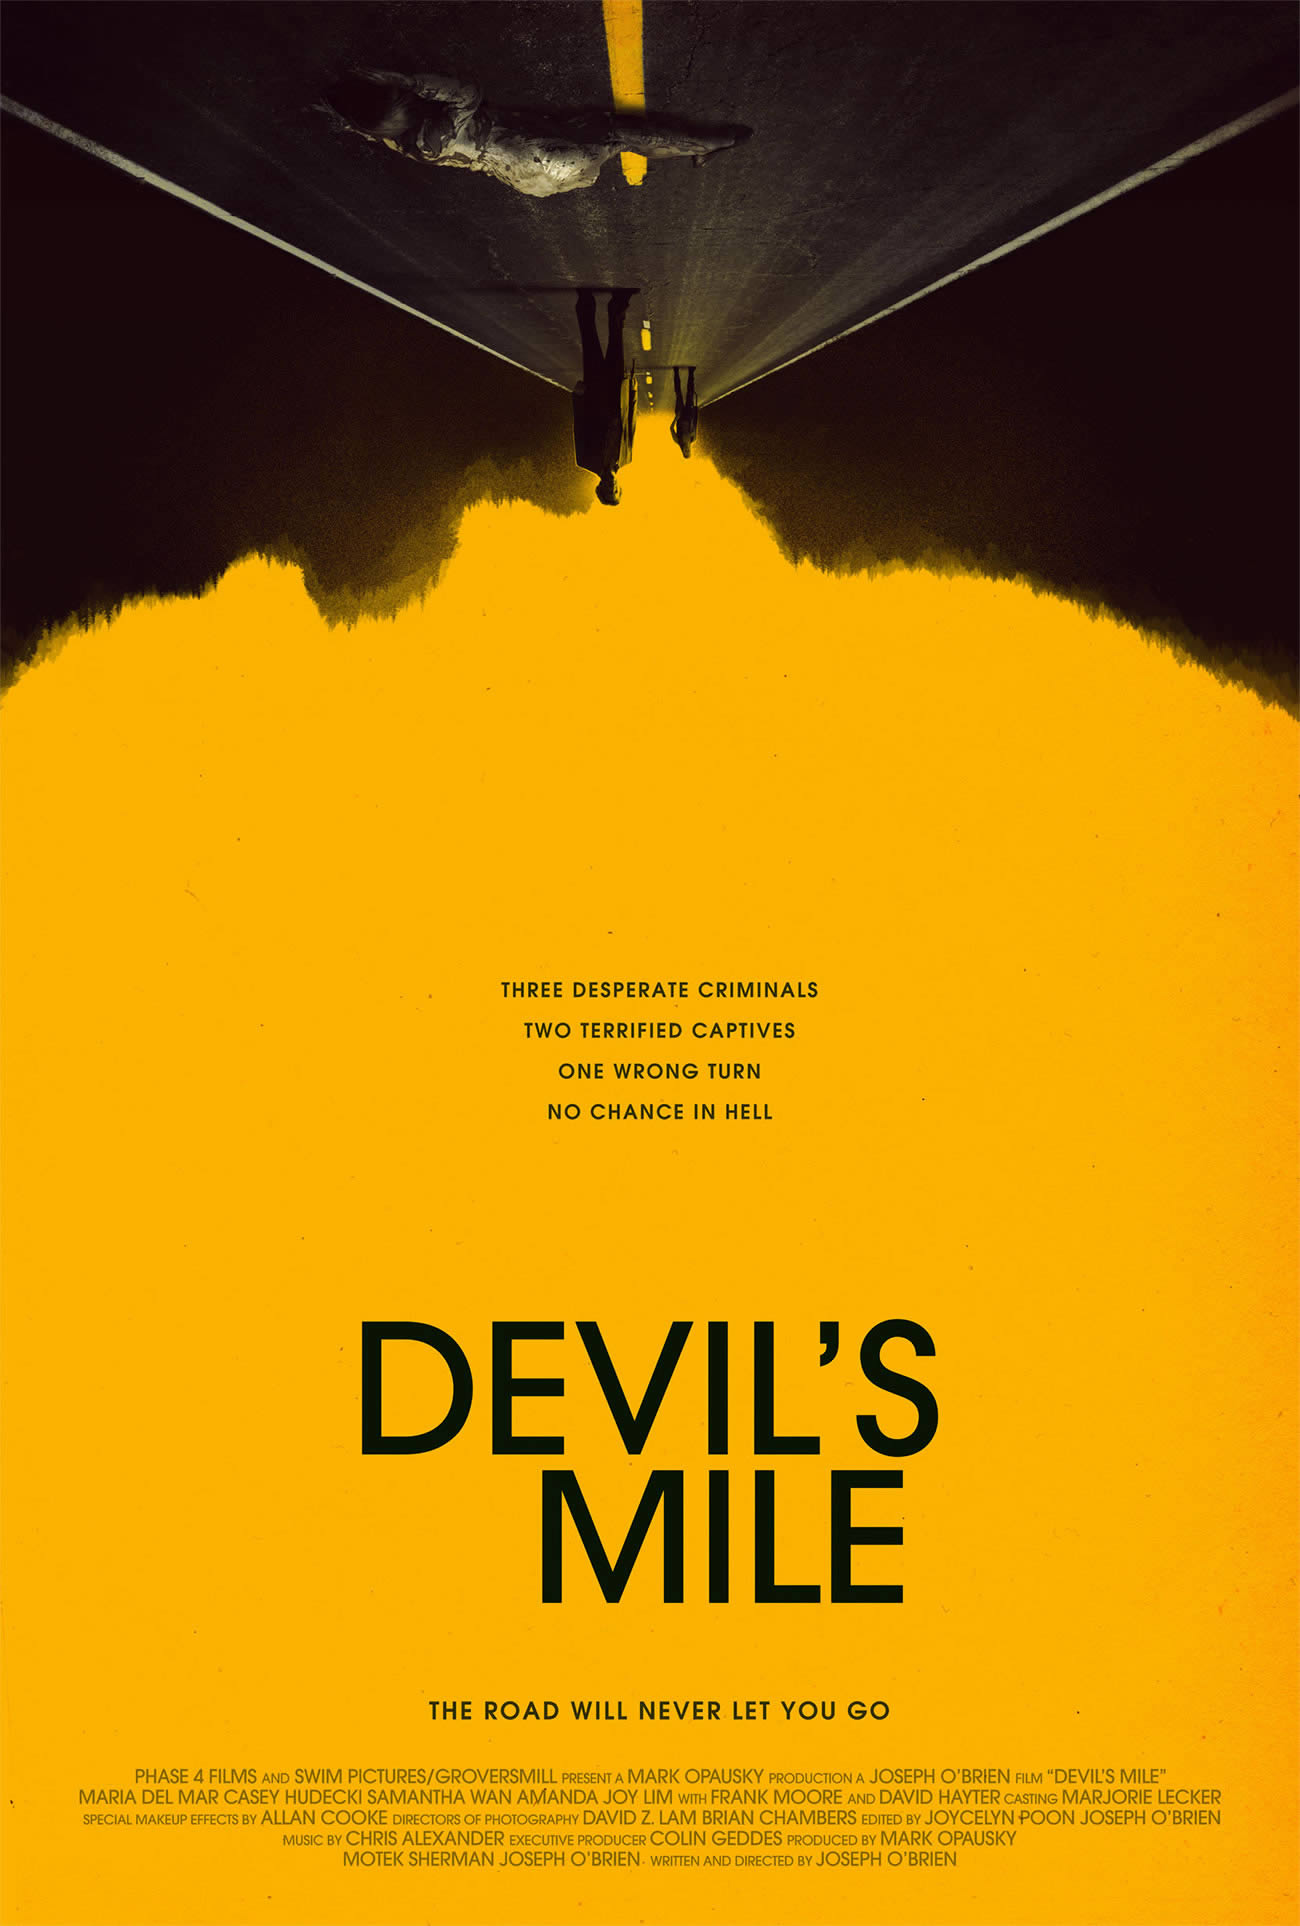 devil's mile poster, upside down, yellow backgroung